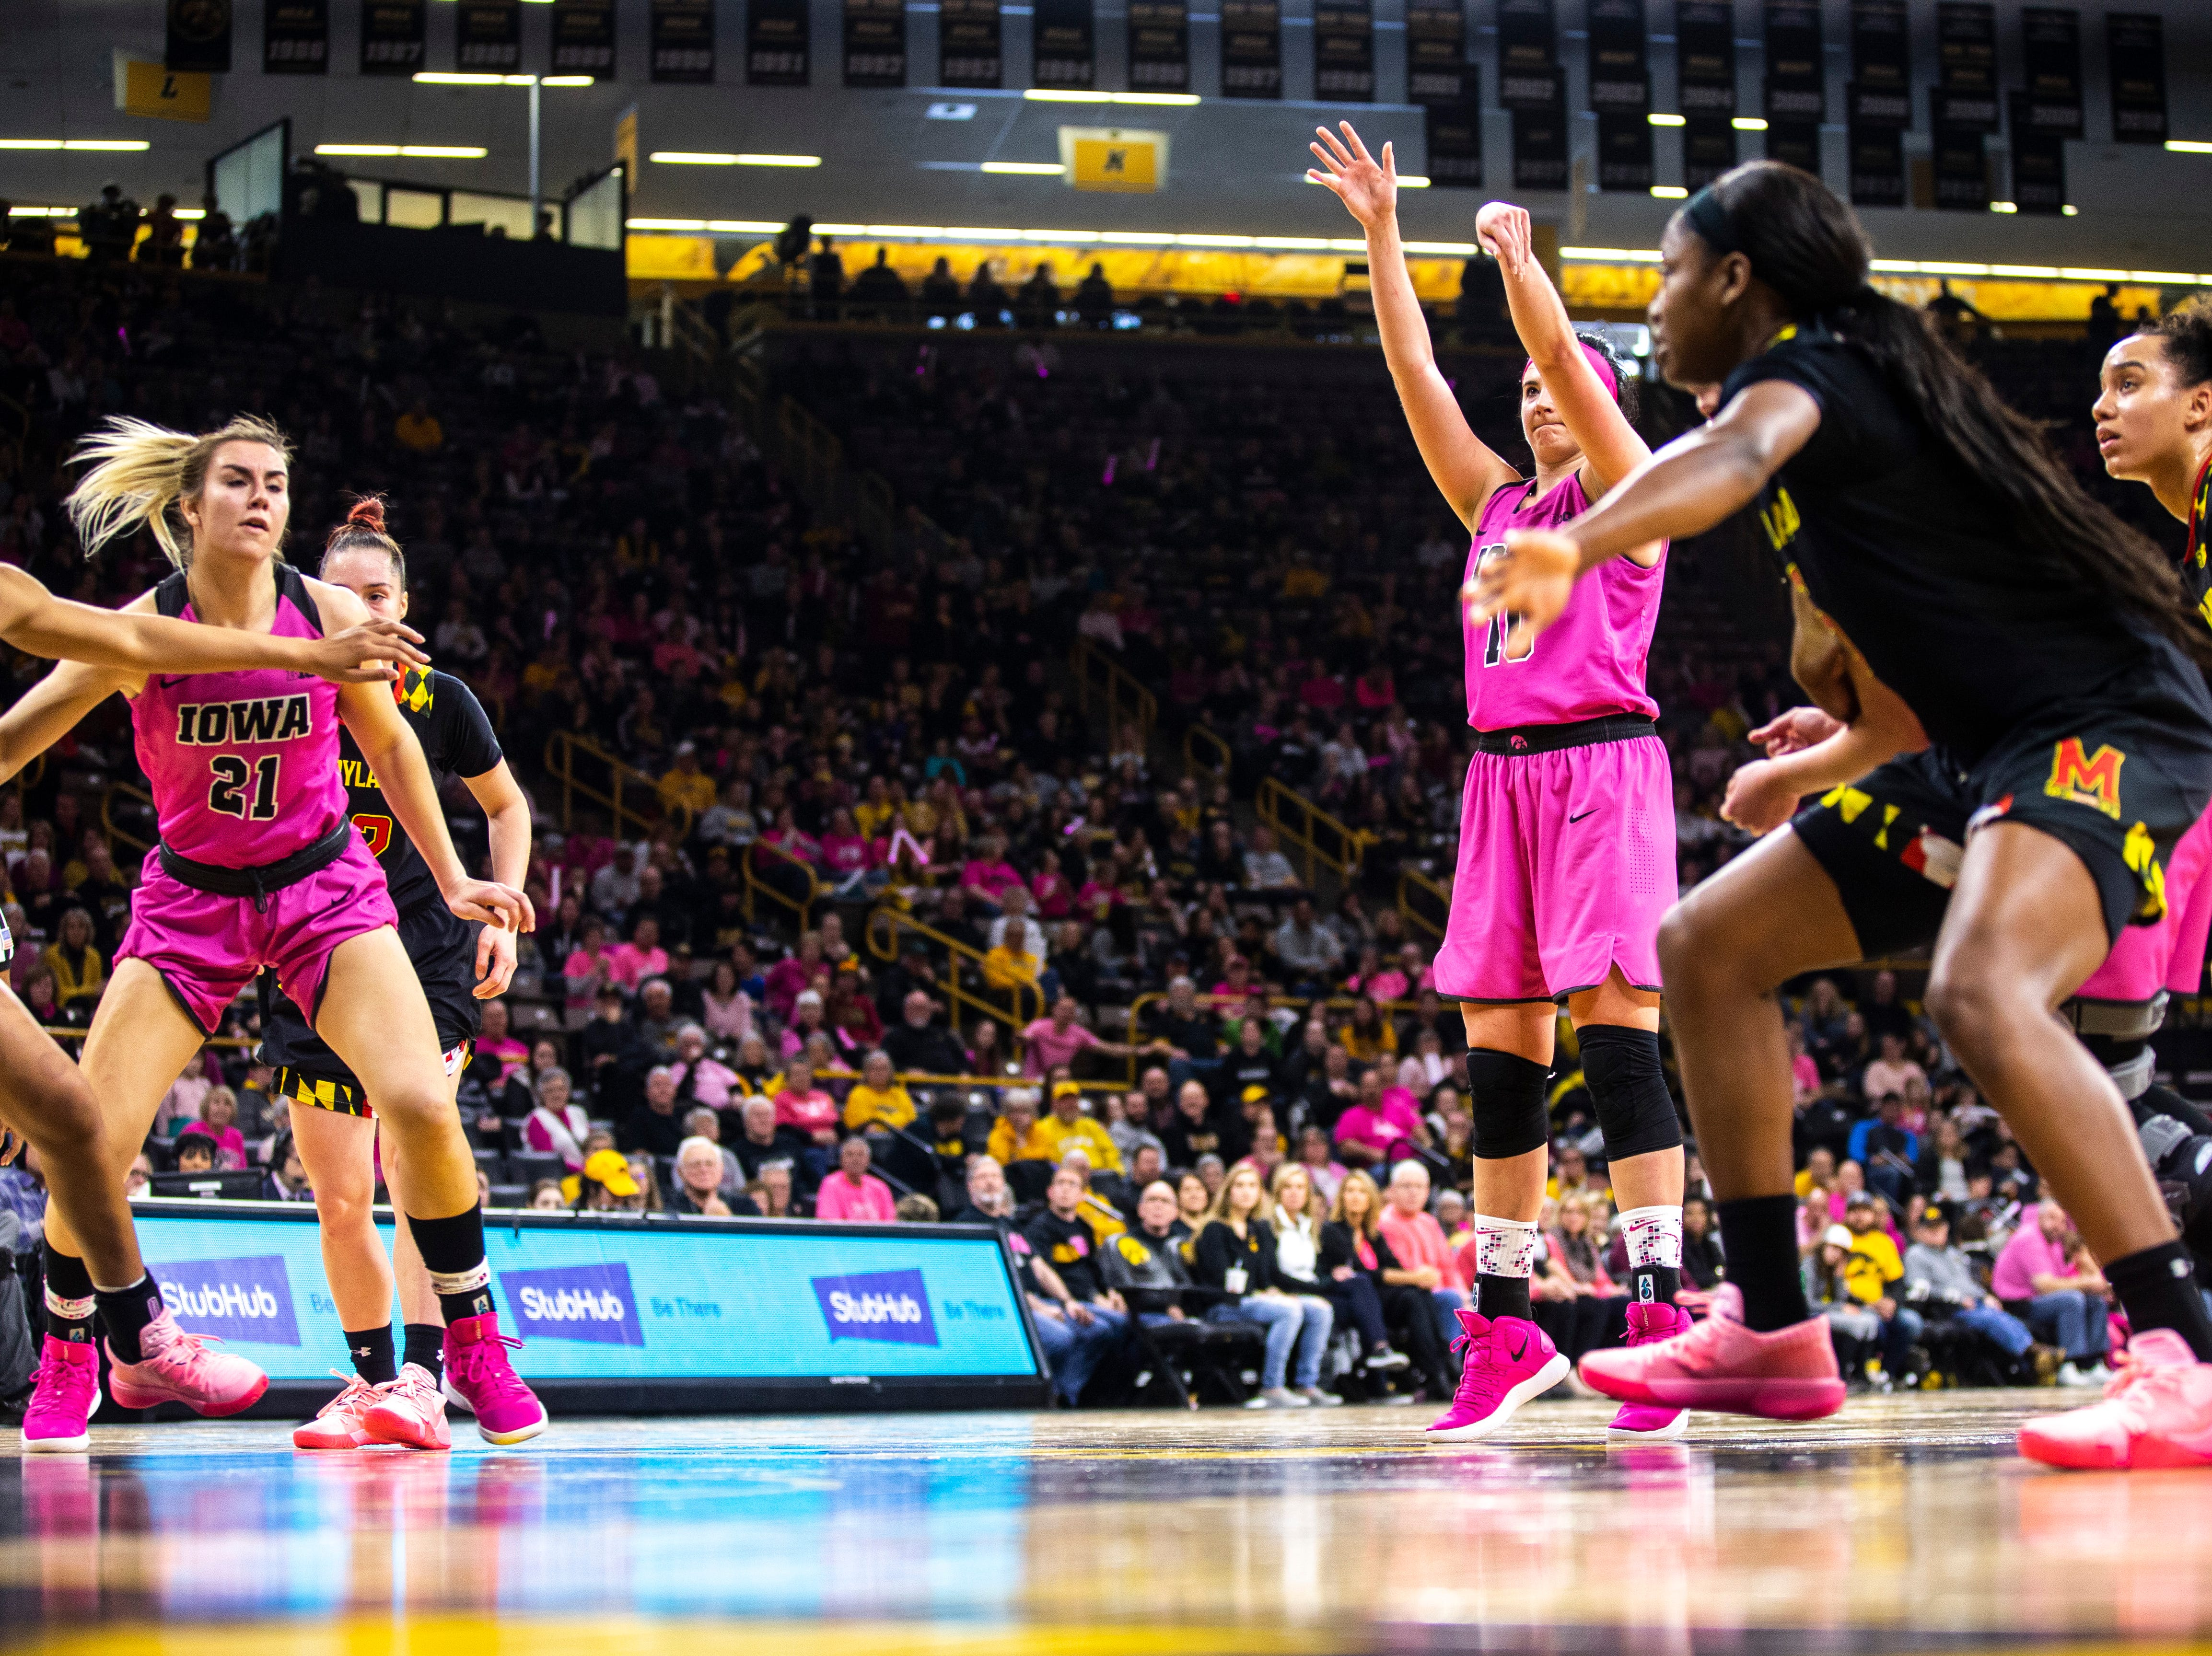 Iowa center Megan Gustafson (10) shoots a free throw during a NCAA Big Ten Conference women's basketball game on Sunday, Feb. 17, 2019 at Carver-Hawkeye Arena in Iowa City, Iowa.